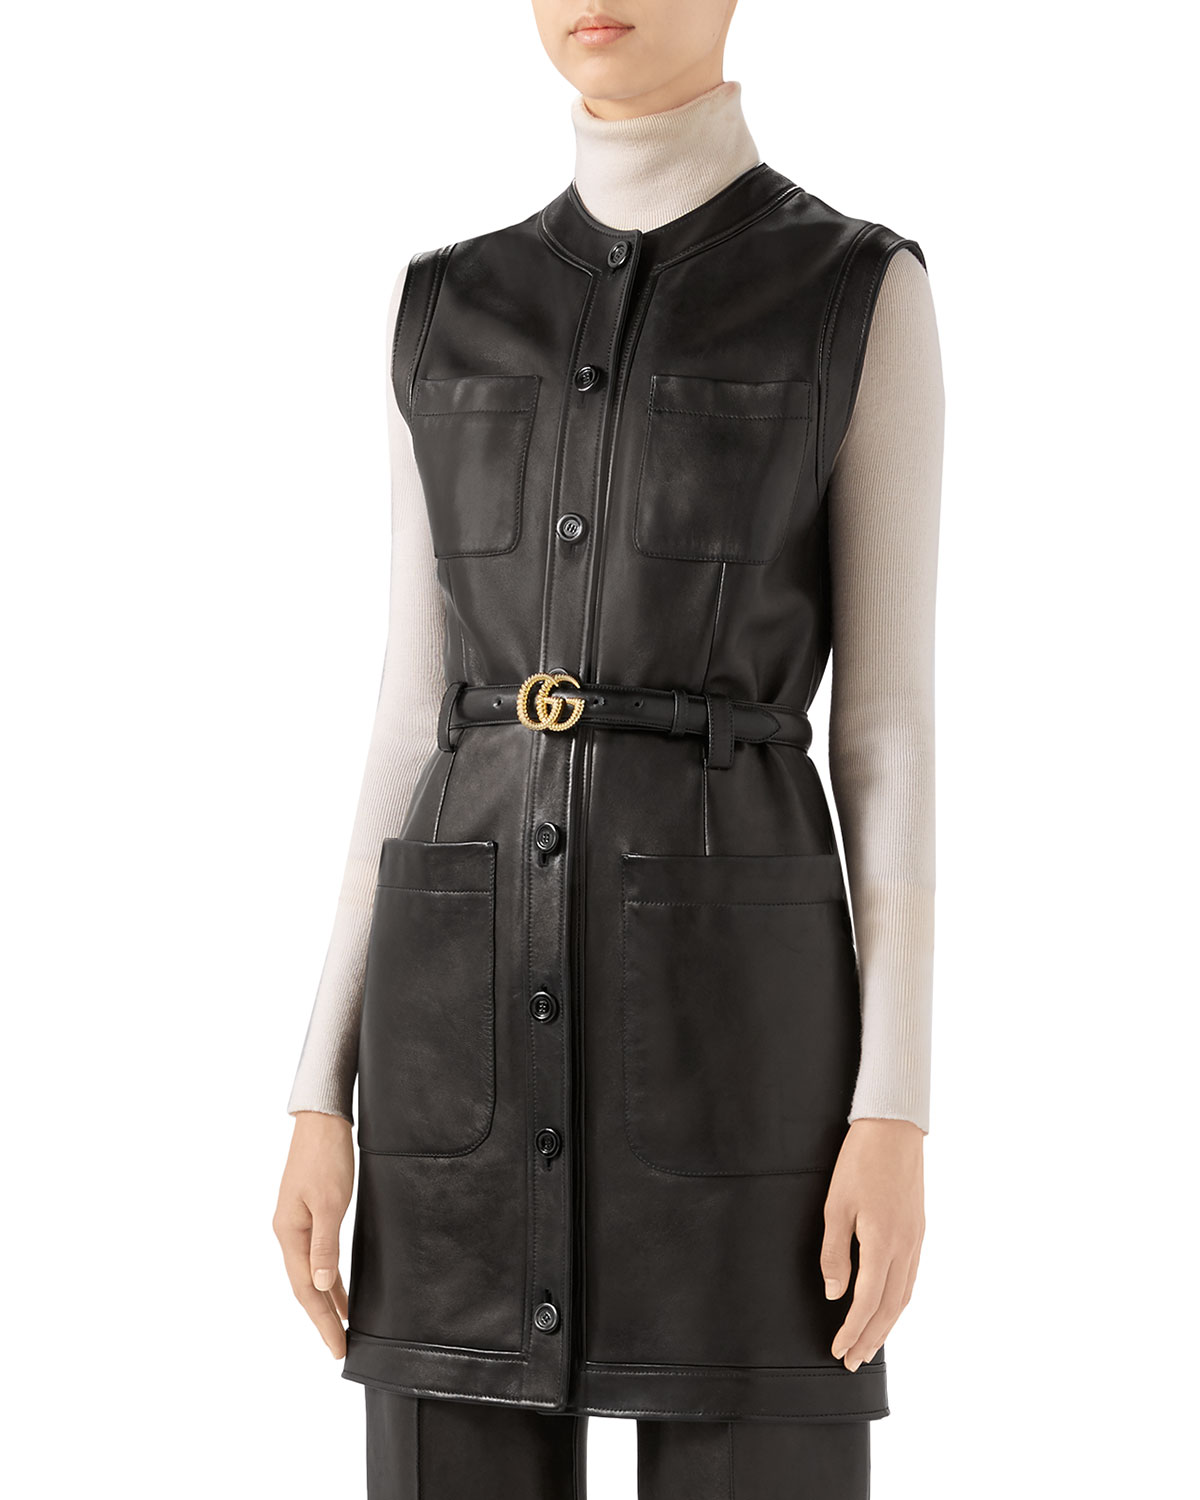 Gucci Dresses LEATHER BUTTON-FRONT BELTED DRESS